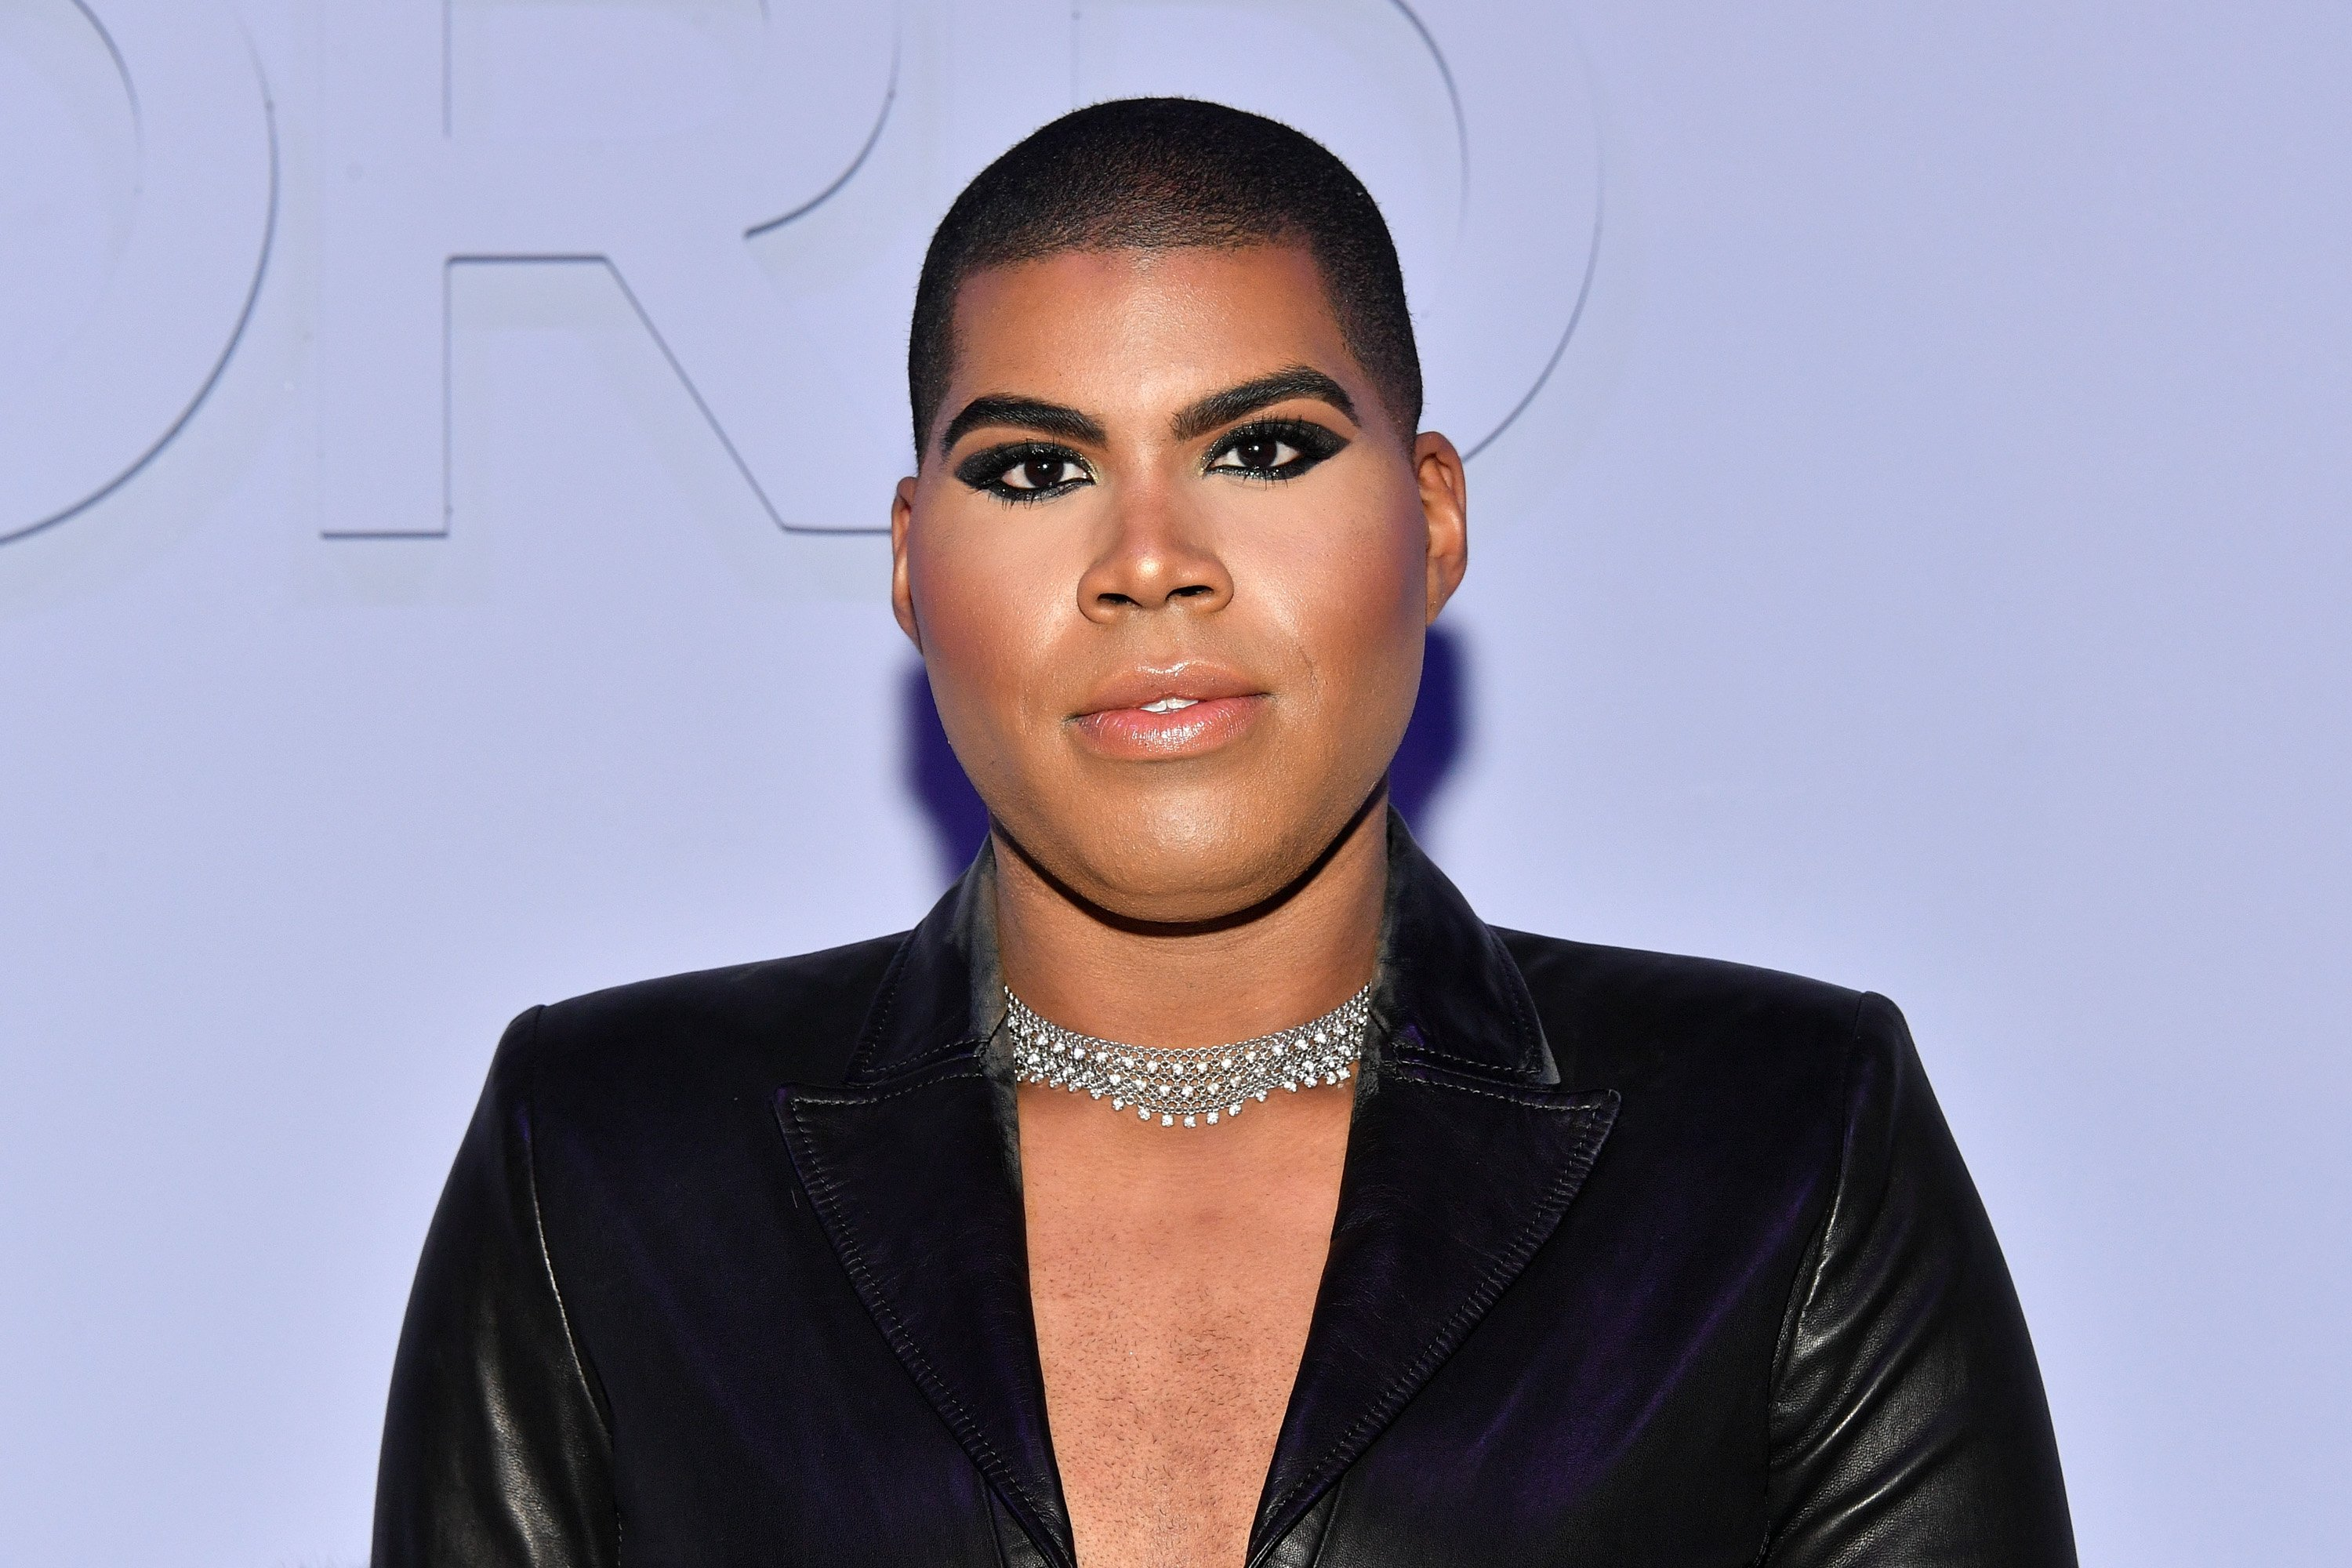 EJ Johnson at the Tom Ford Women's Fall/Winter 2018 fashion show during New York Fashion Week on February 8, 2018 | Photo: Getty Images